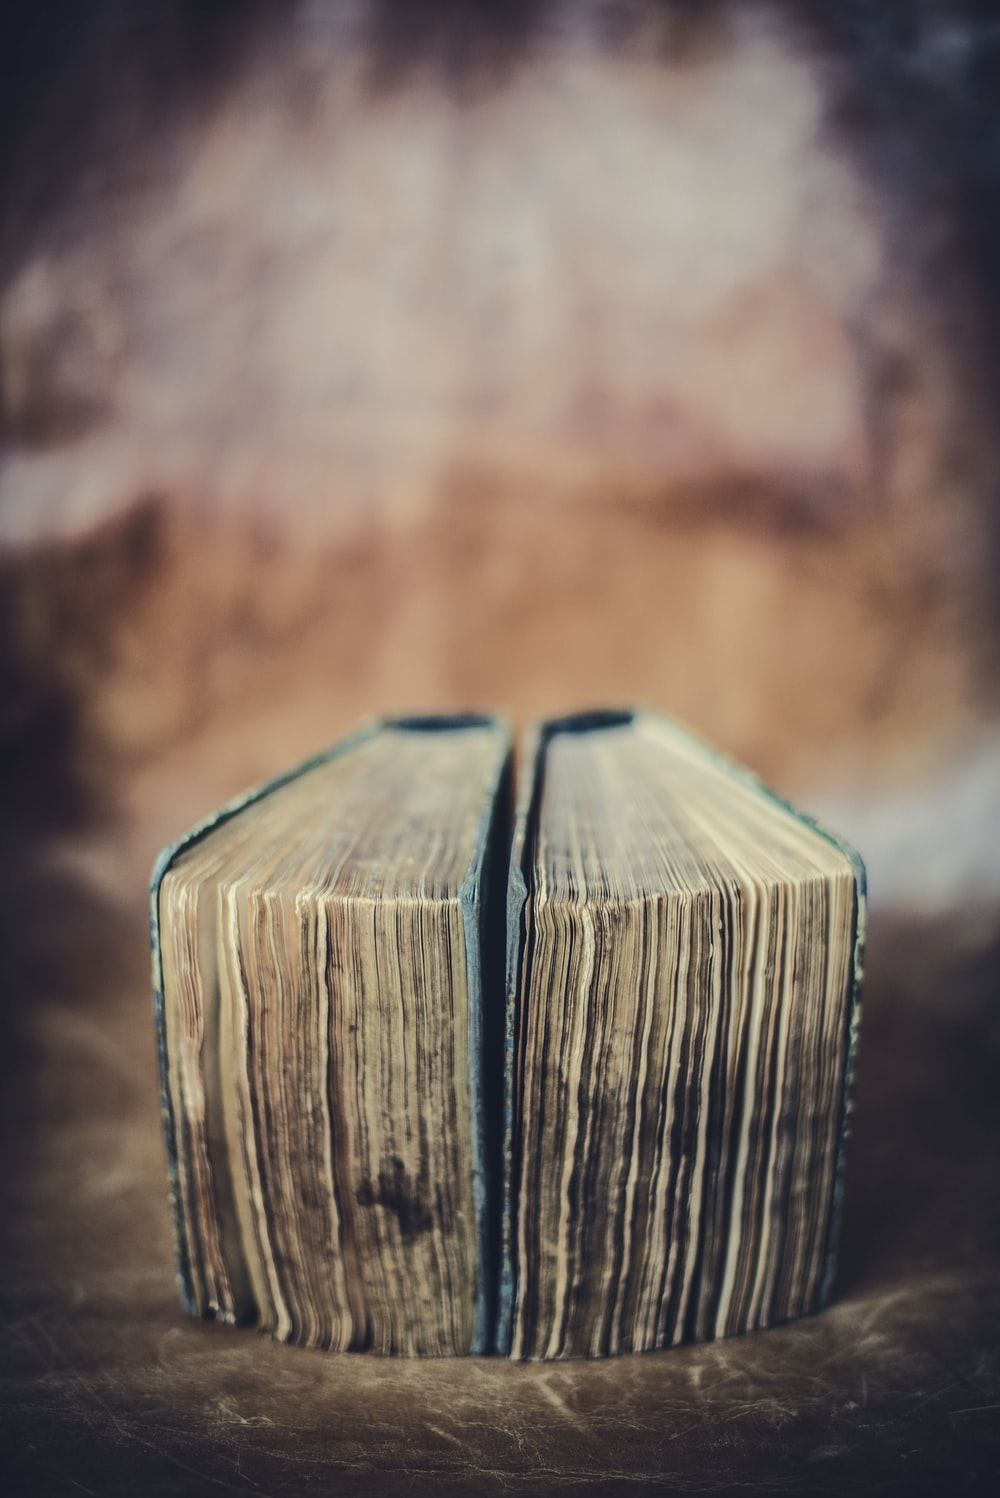 books closed selective focus photo